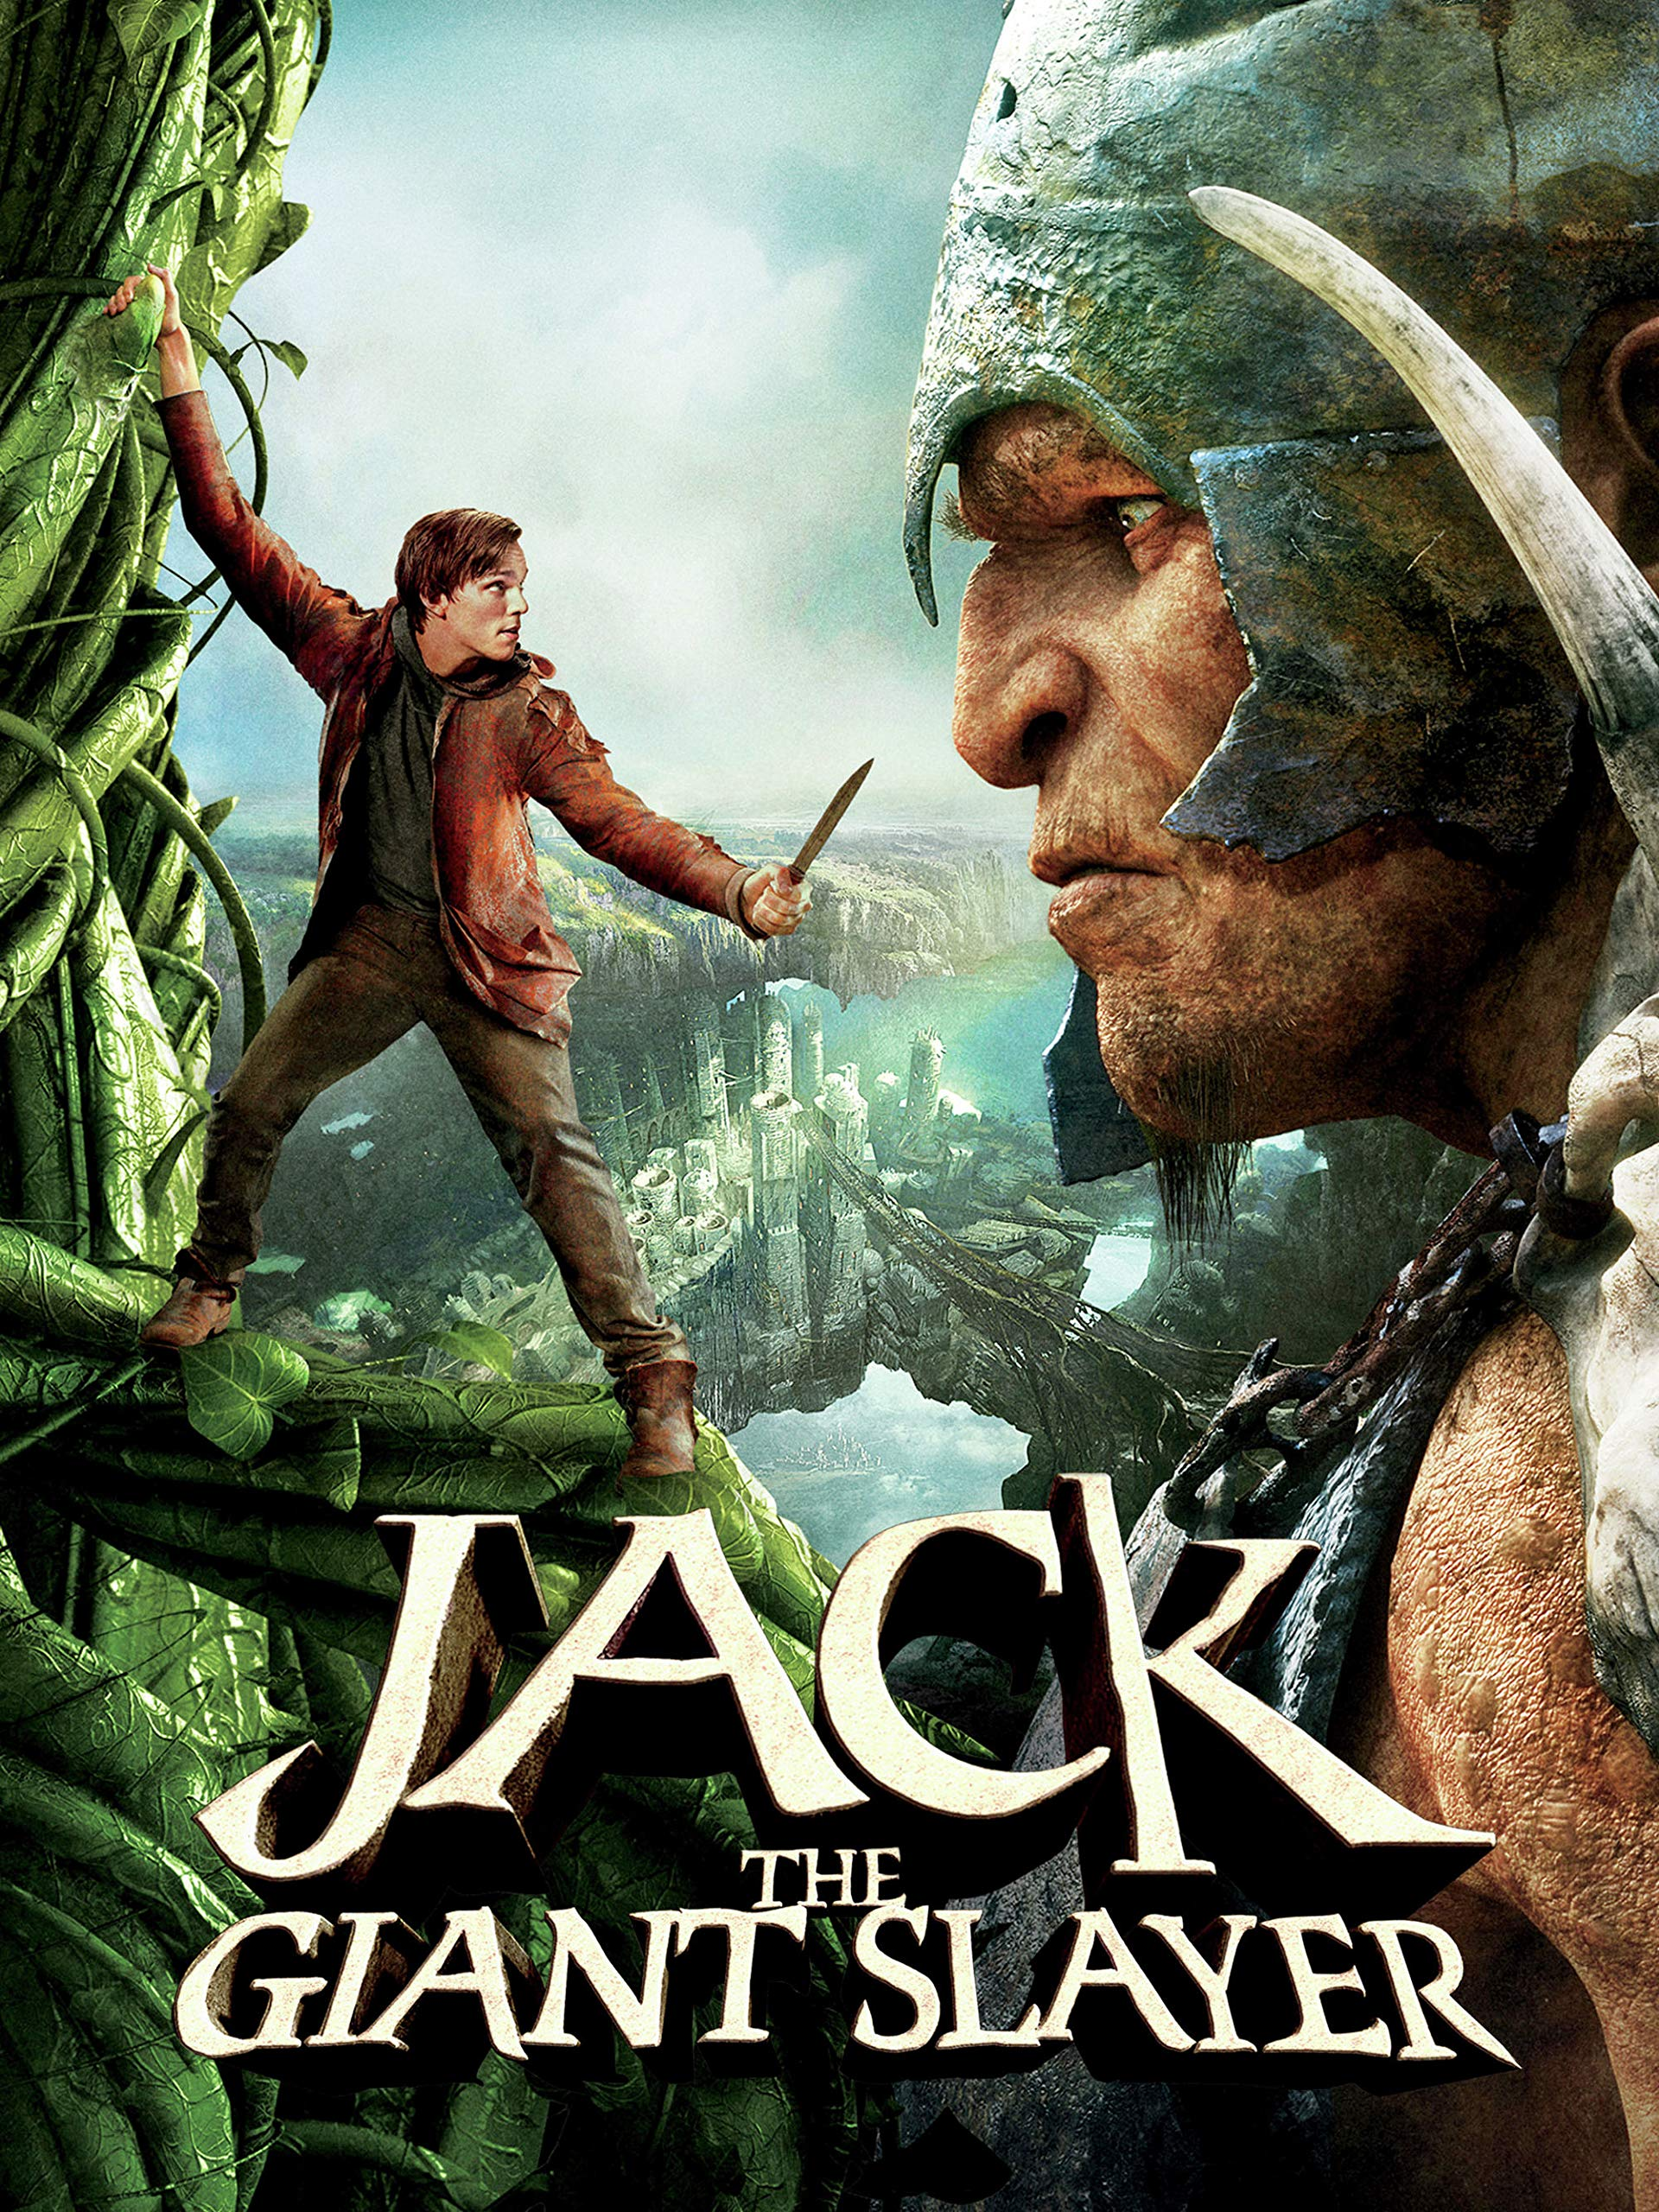 Watch Jack The Giant Slayer Prime Video